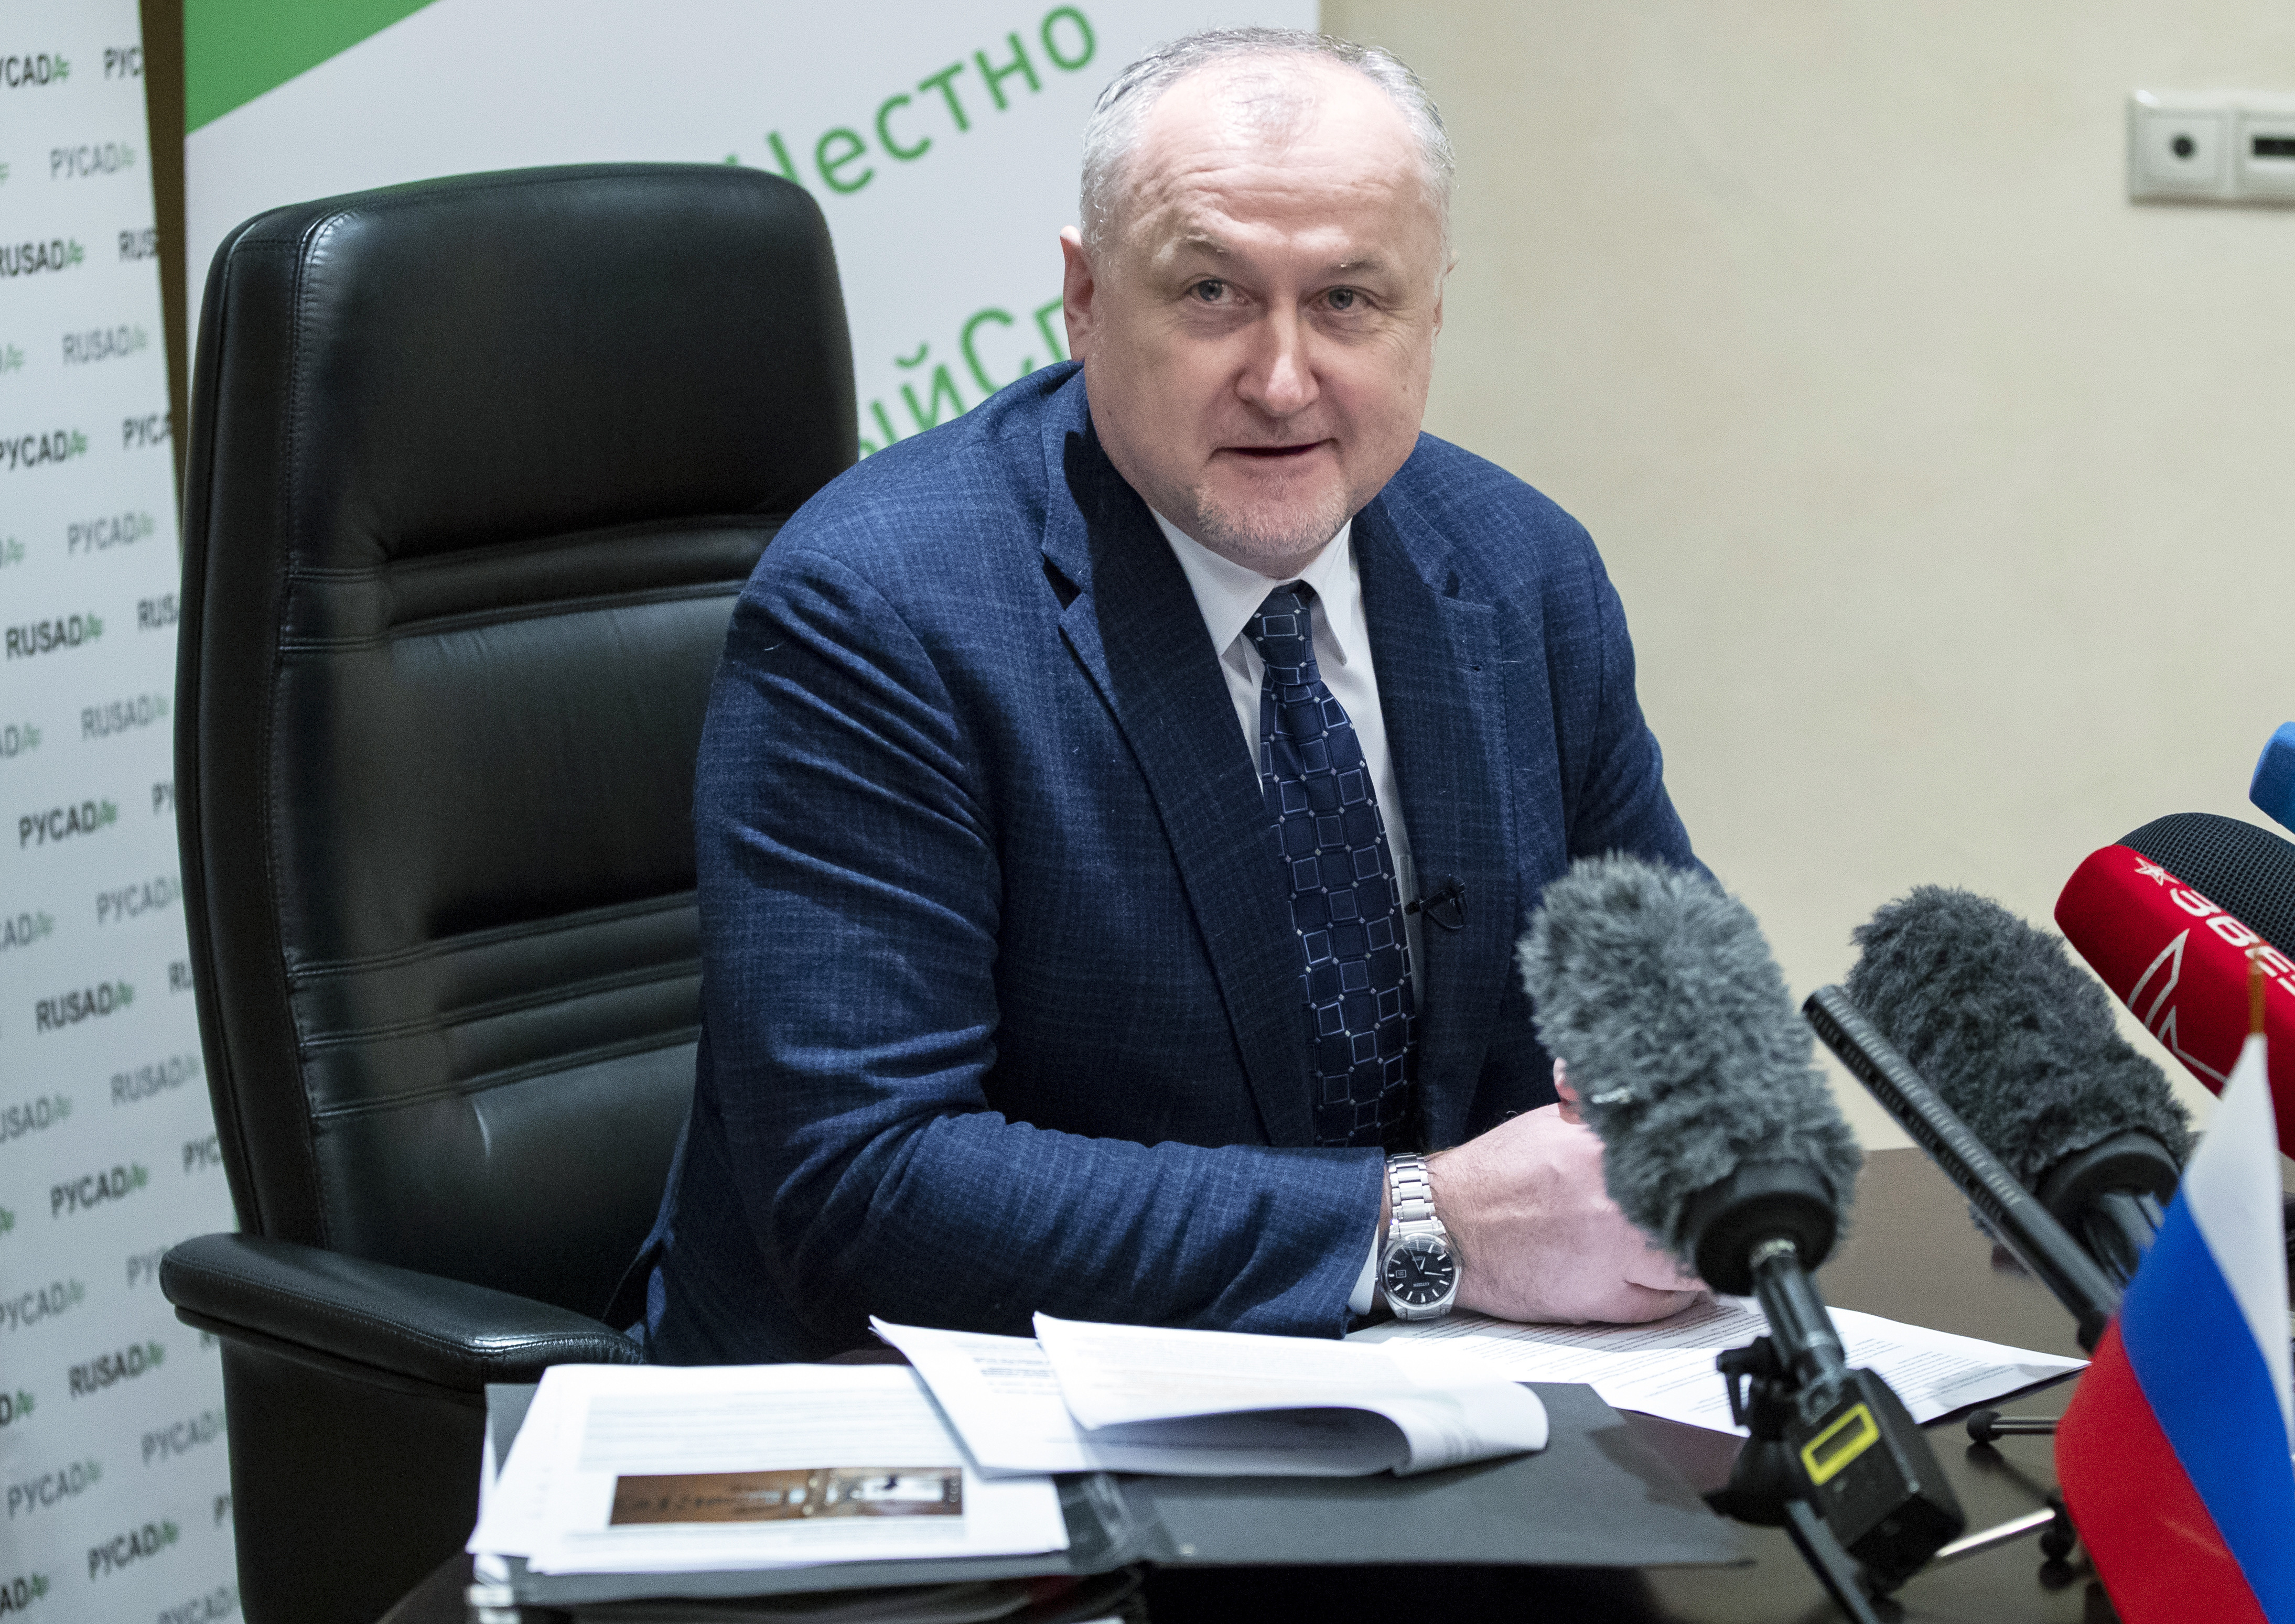 Russian National Anti-doping Agency RUSADA head Yuri Ganus smiles during a news conference in Moscow, Russia, Tuesday, Jan. 22, 2019.  World Anti-Doping Agency (WADA) forgave Russia on Tuesday for its tardiness in turning over lab data, but they are still analyzing what it says are vast amounts of data from lab servers and equipment, data which until recently was sealed off by Russian law enforcement. (AP Photo/Pavel Golovkin)